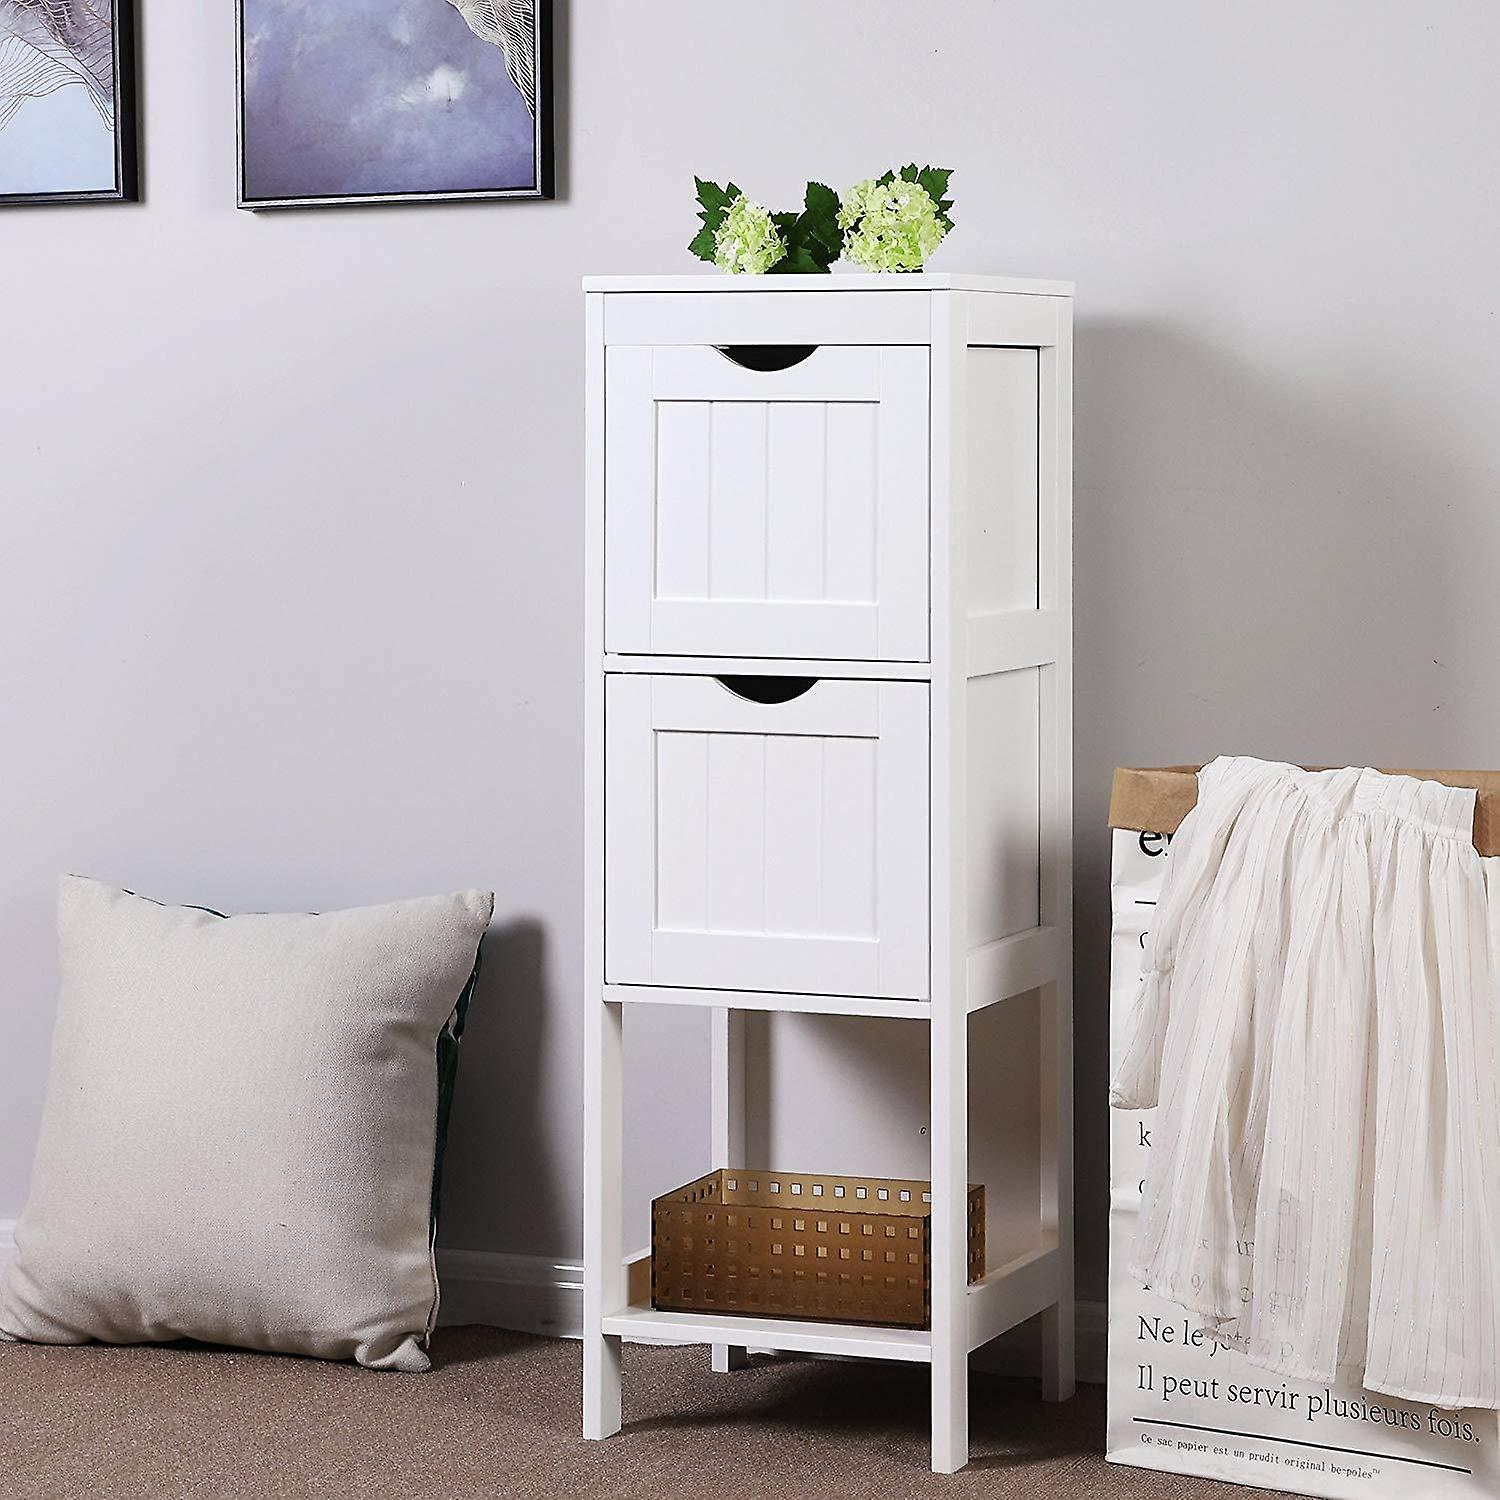 Bathroom cabinet with removable baskets